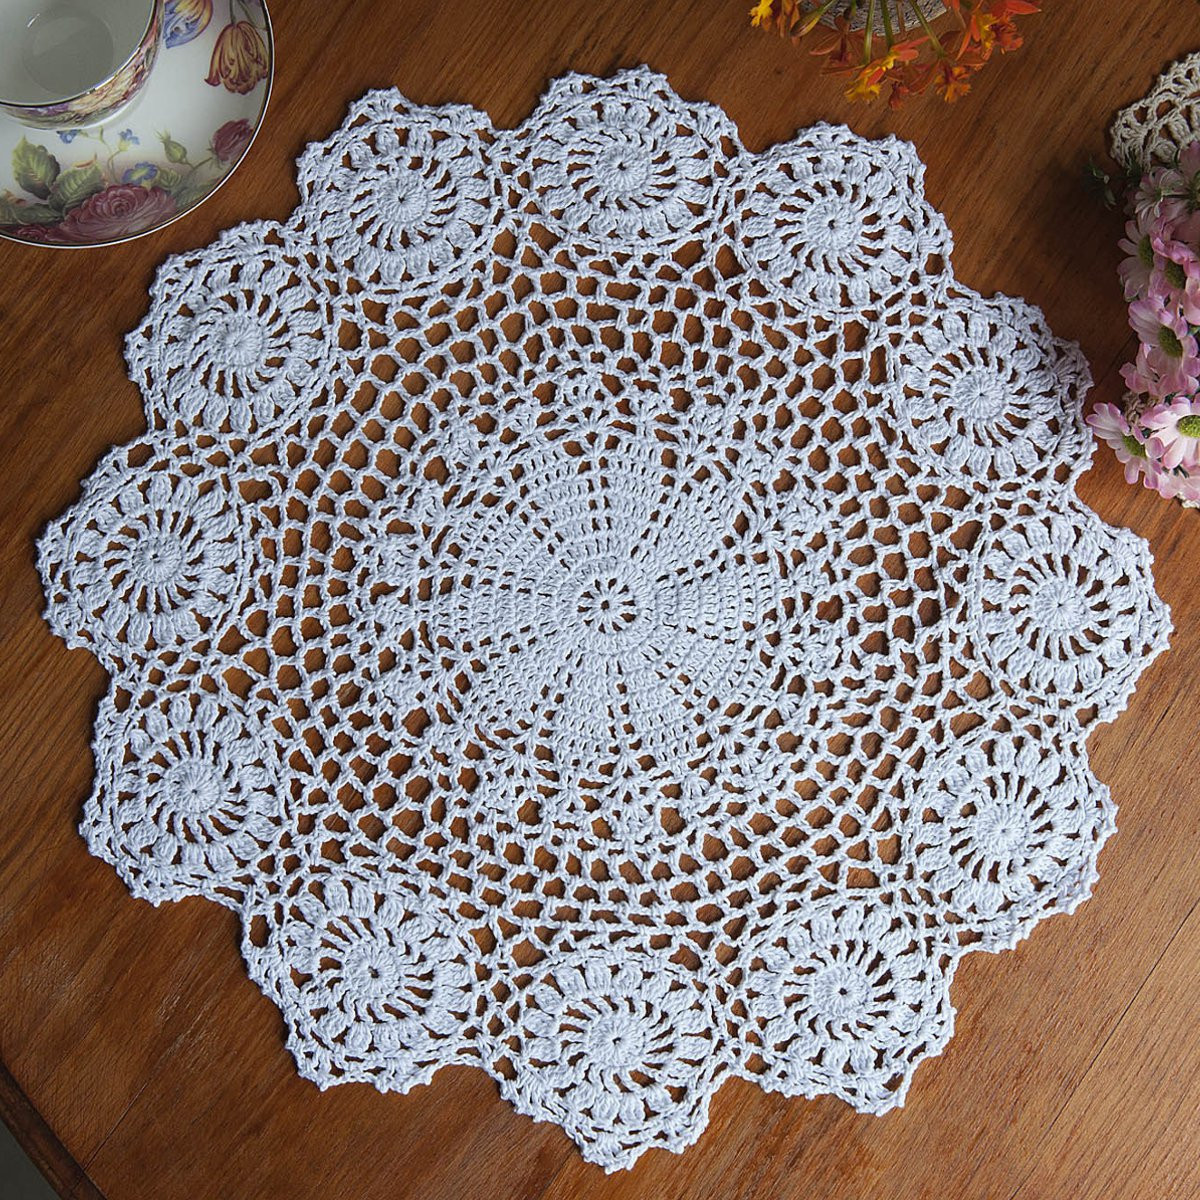 Meigar 14.5-inch Round Handmade Cotton Crochet Doilies, Vintage Placemat  Crocheted Lace Doilies Flower Table Fabric Cloth Coasters Doily Mat